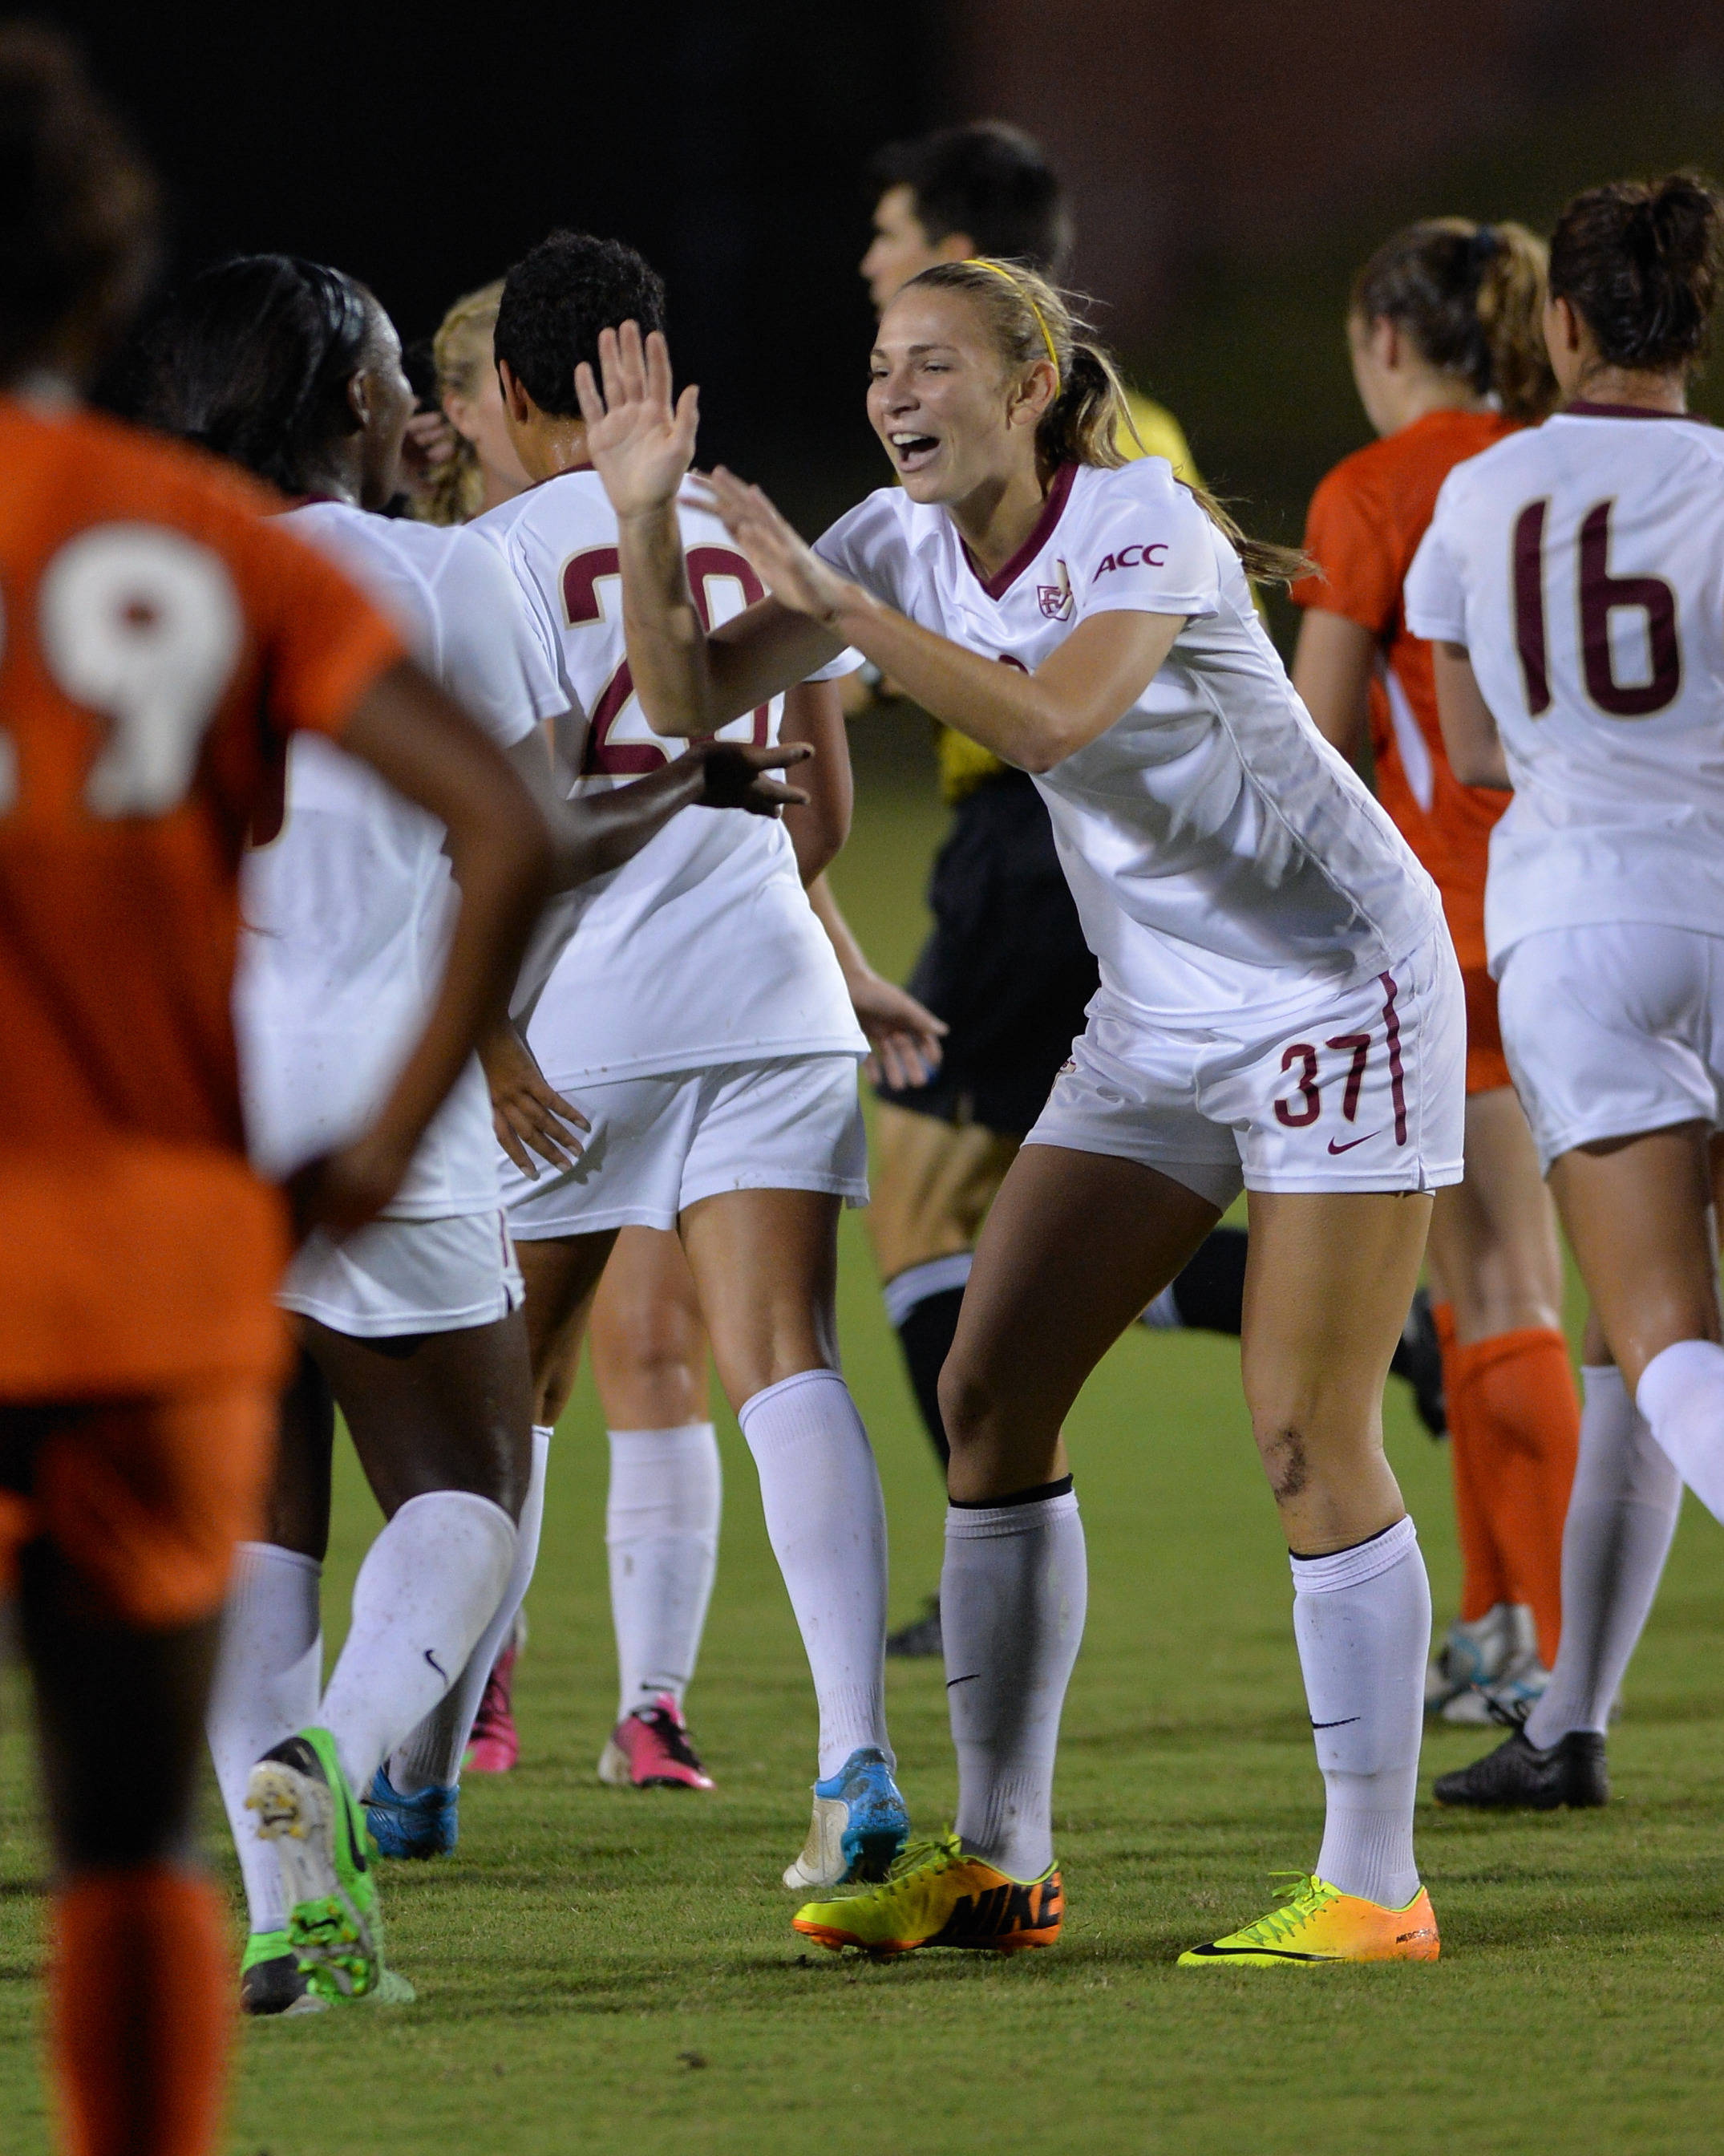 The Seminoles celebrate after scoring a goal Thursday night.